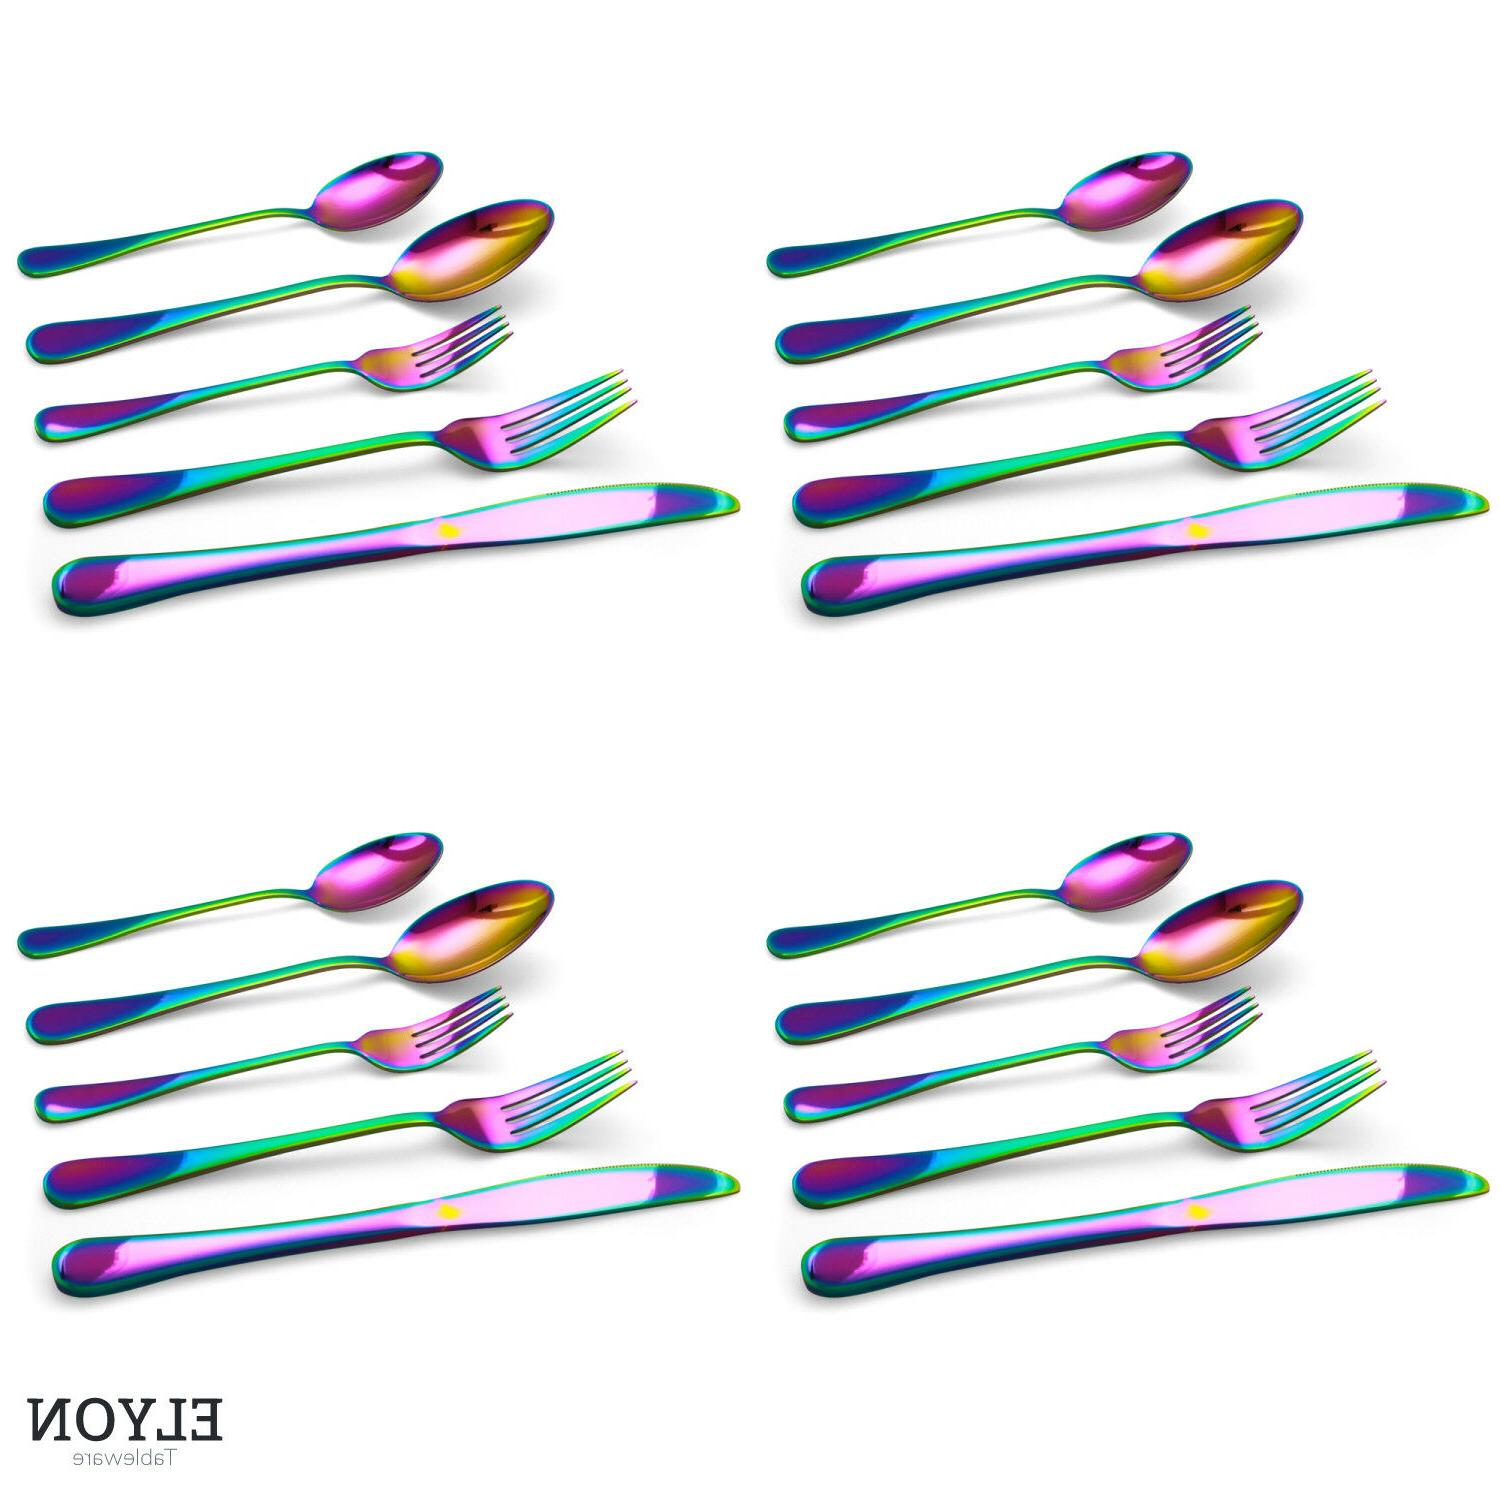 20-Piece Stainless Steel Set For 4